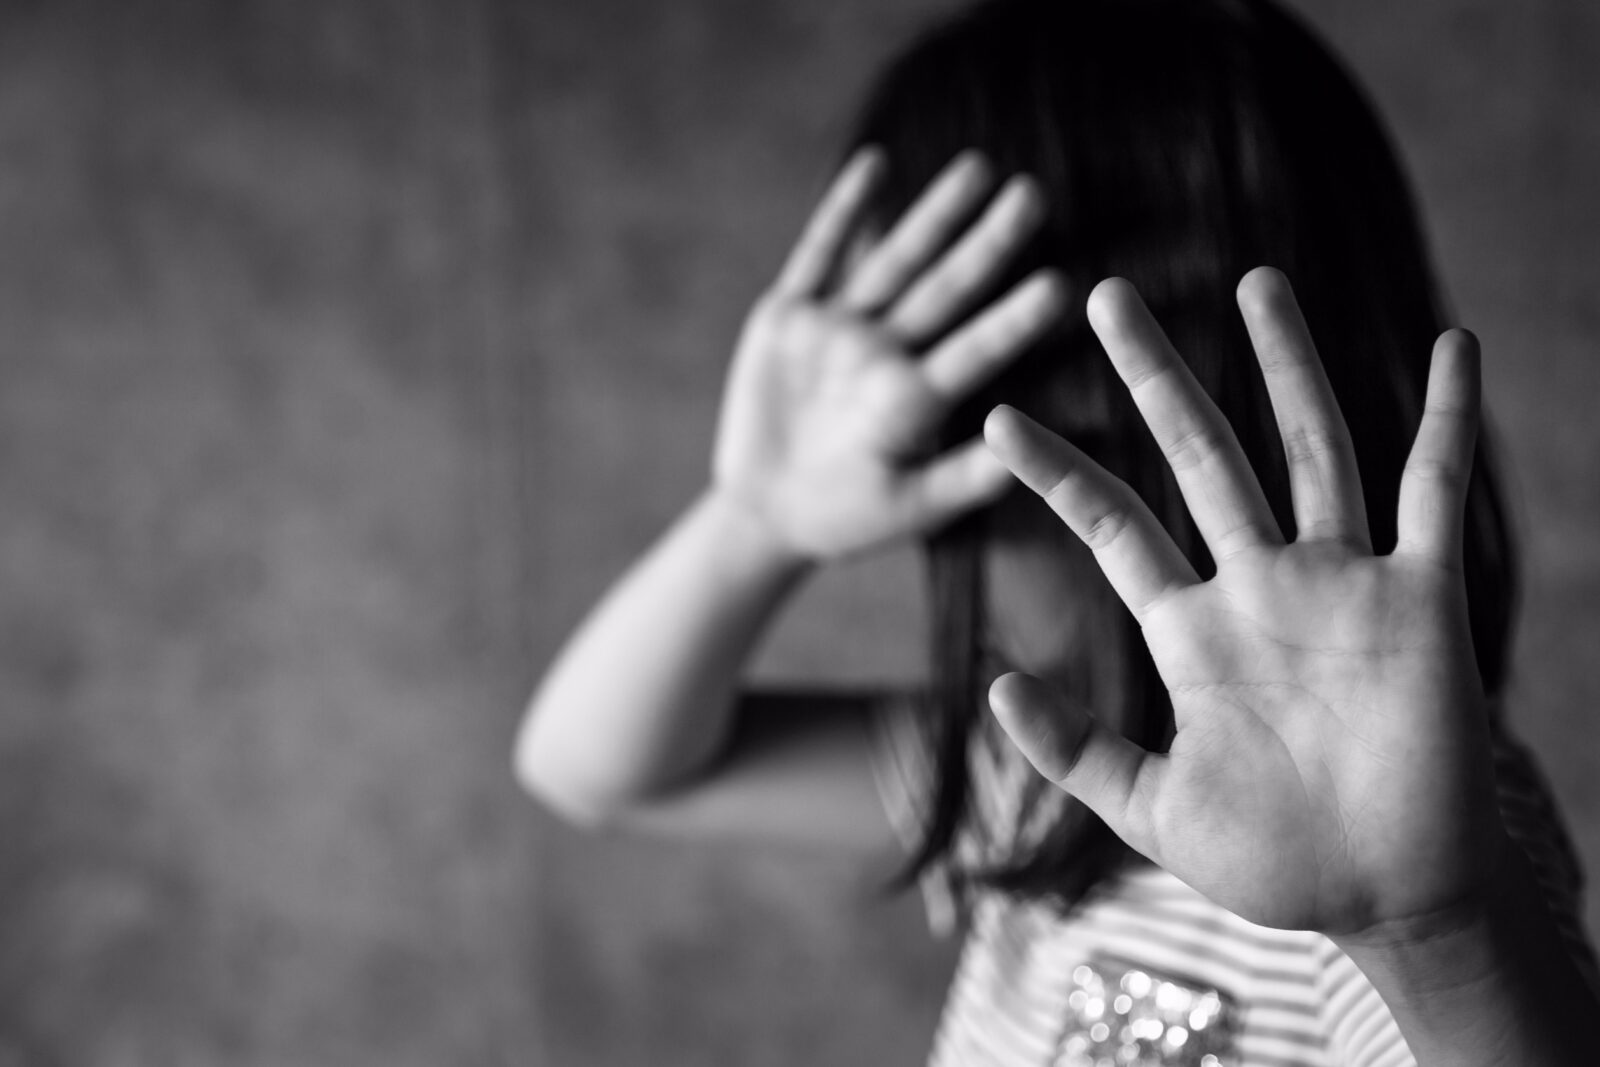 black and white image of a child with straight, black, shoulder-length hair whose face is not visible behind their outstretched palms as if they are saying no with their hands